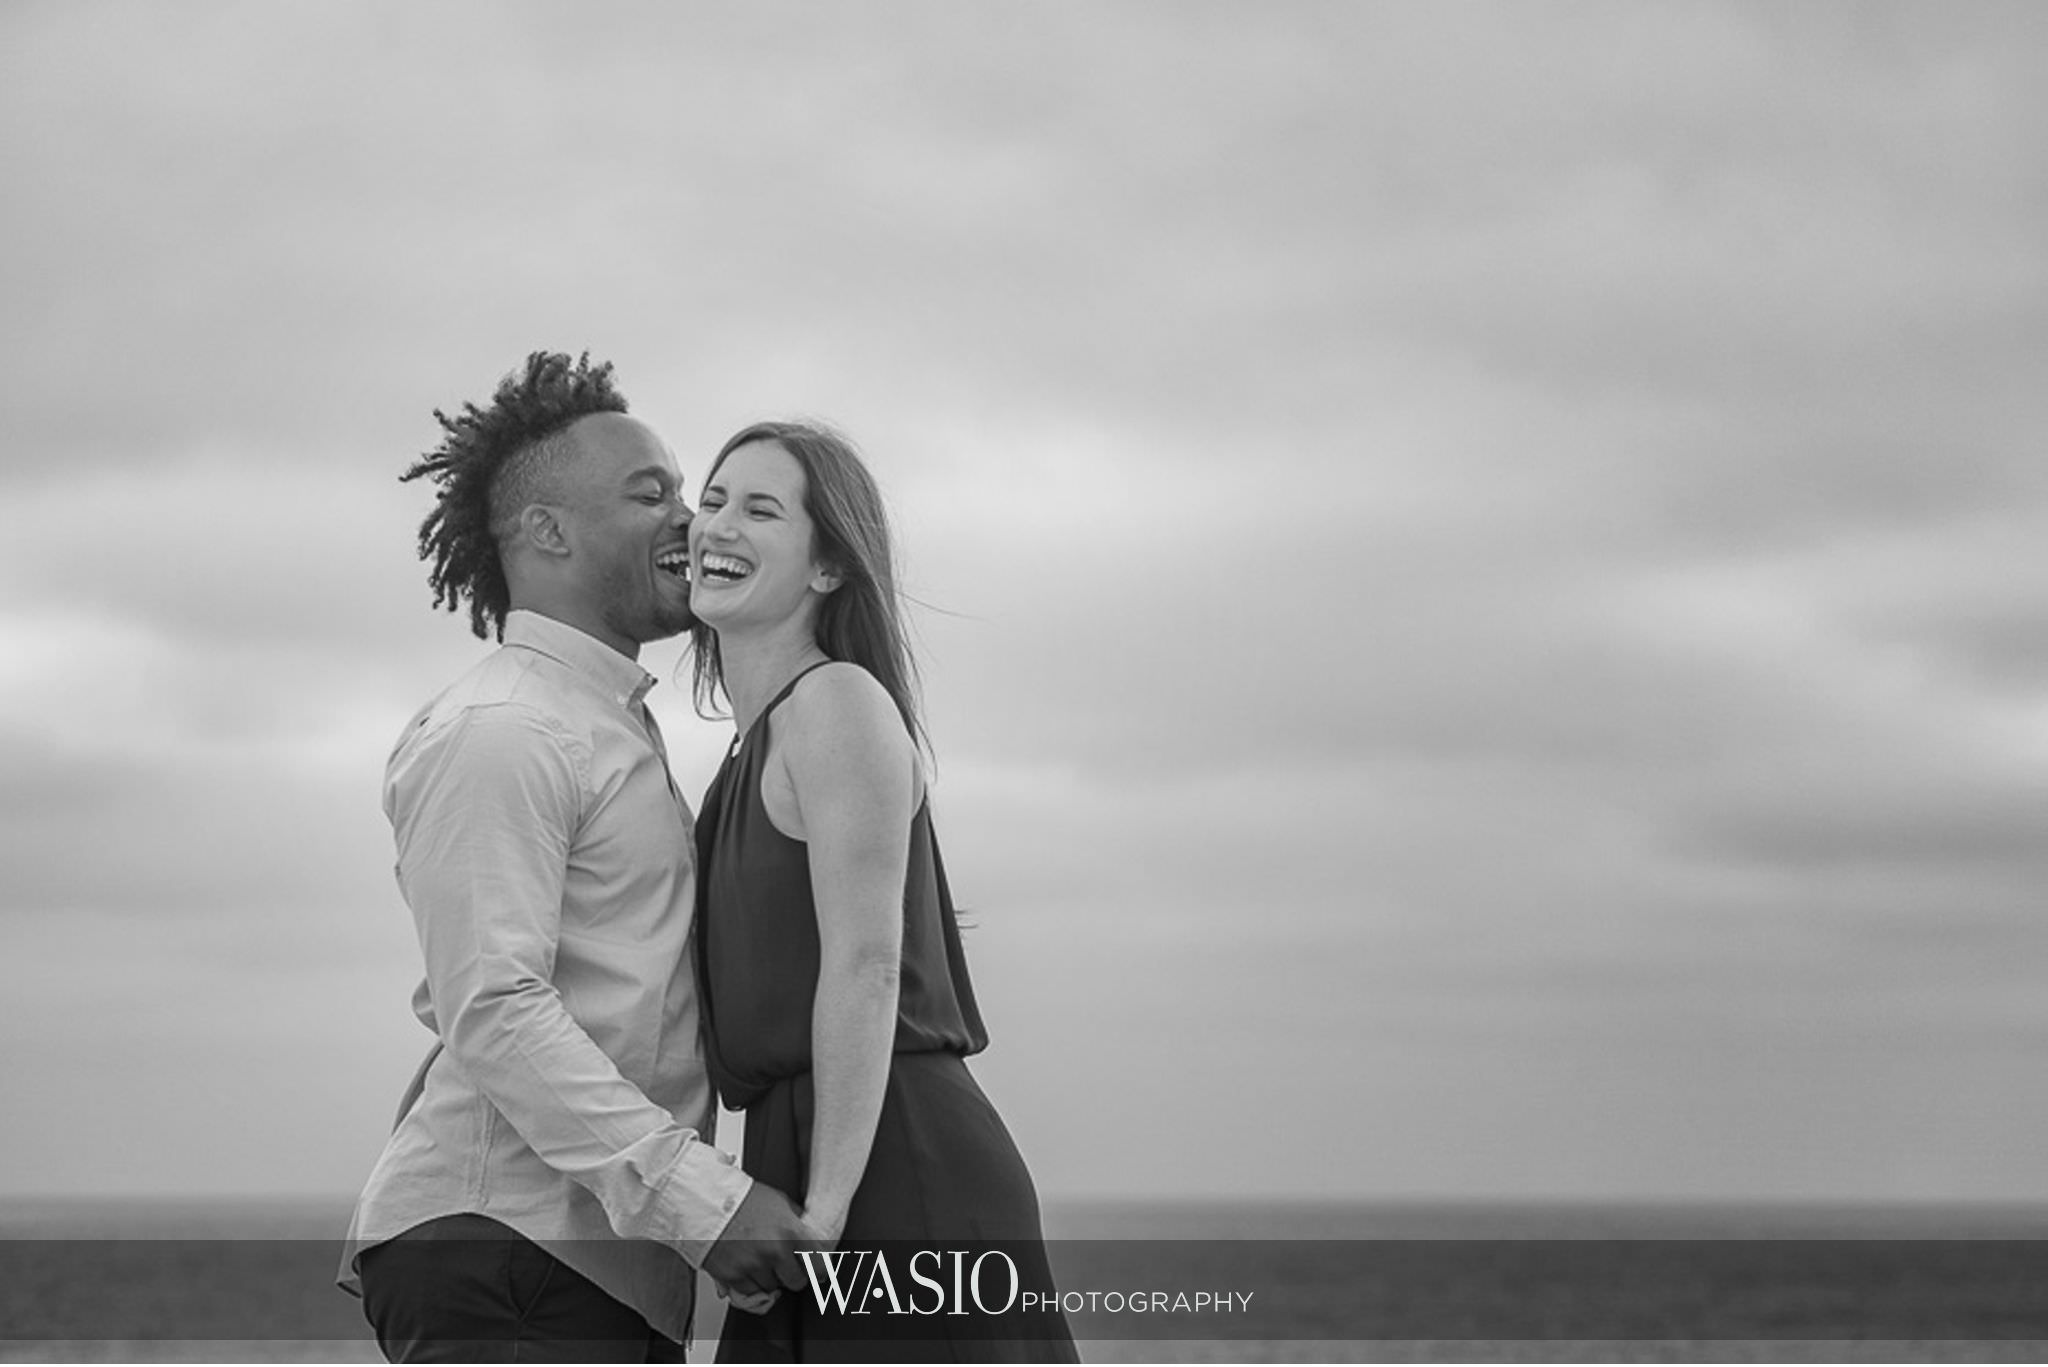 Sunset-Cliffs-San-Diego-Engagement-black-white-photojournalistic-kiss-fun-happy-photography-60 Sunset Cliffs San Diego Engagement - Laura and La Broi